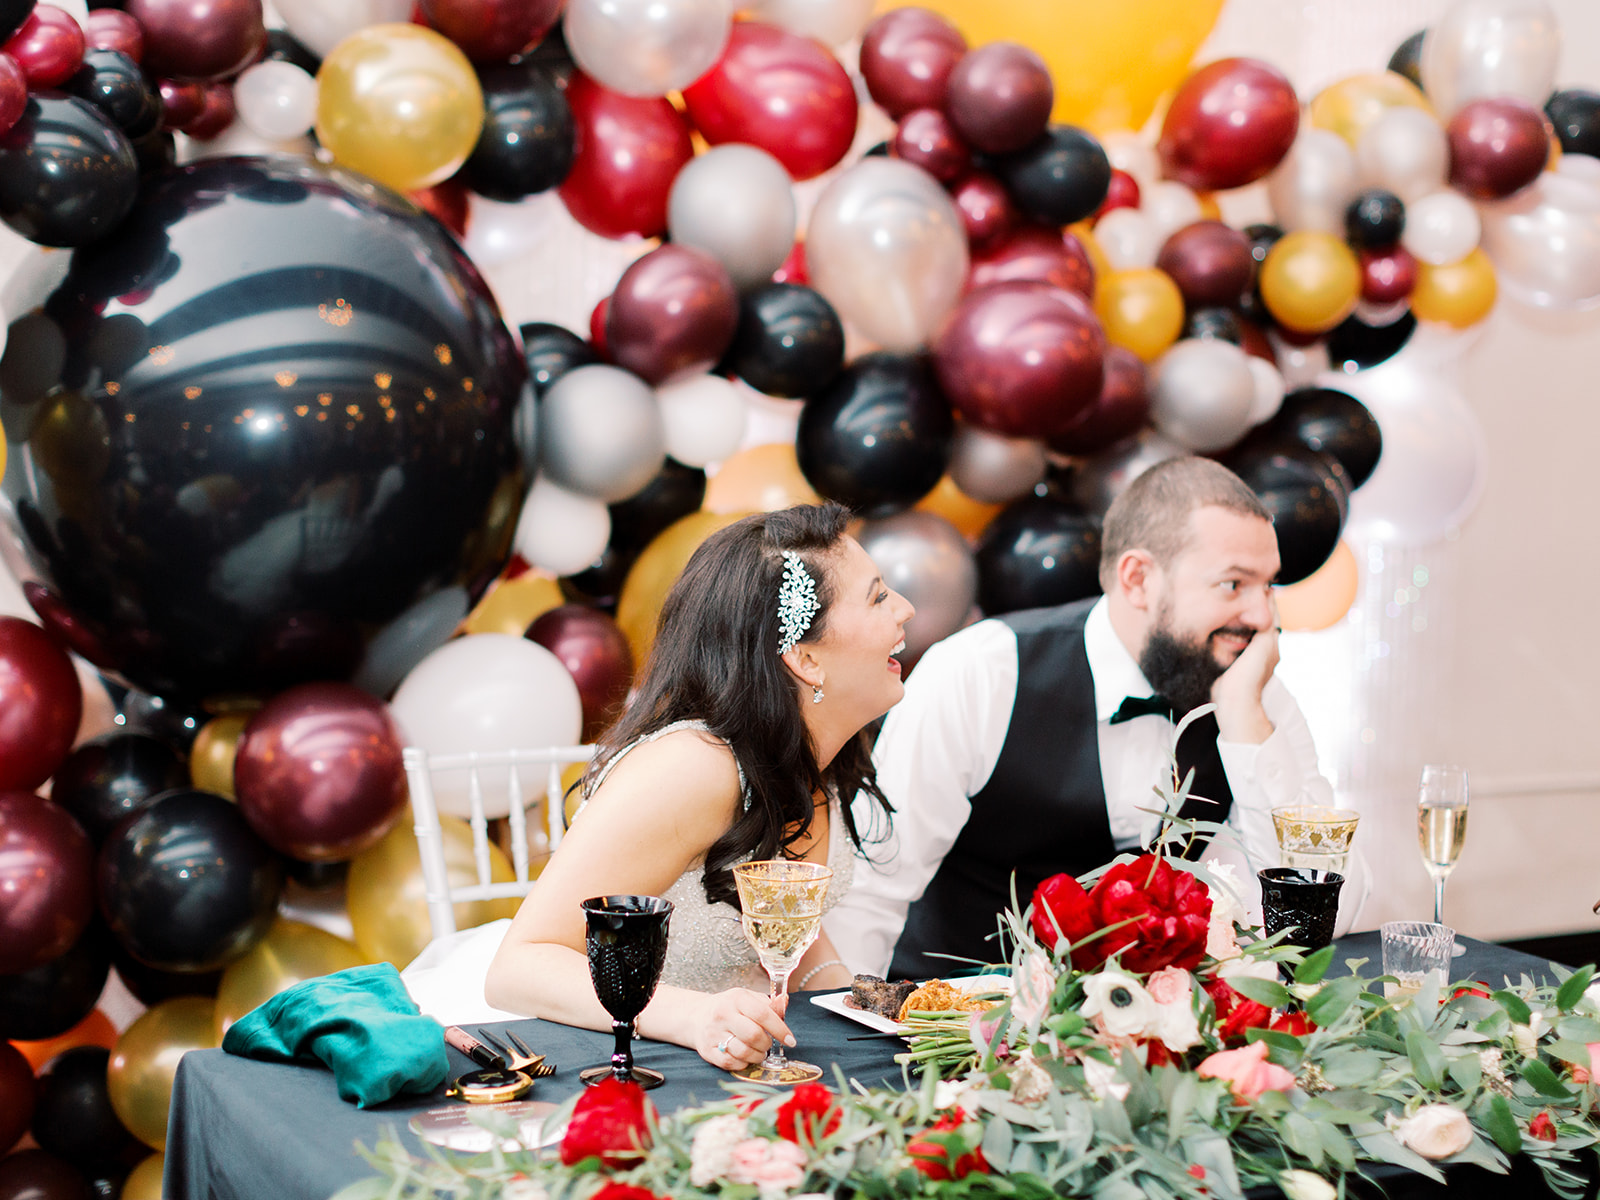 The Perfect Winter Wedding on NYE Filled with Balloons and Lots of Velvet: Kellye & Trevor- Konsider It Done- AZ Arizona Wedding & Event Planner, Designer, Coordinator Planning in Scottsdale, Phoenix, Paradise Valley, Tempe, Gilbert, Mesa, Chandler, Tucson, Sedona, Soho63